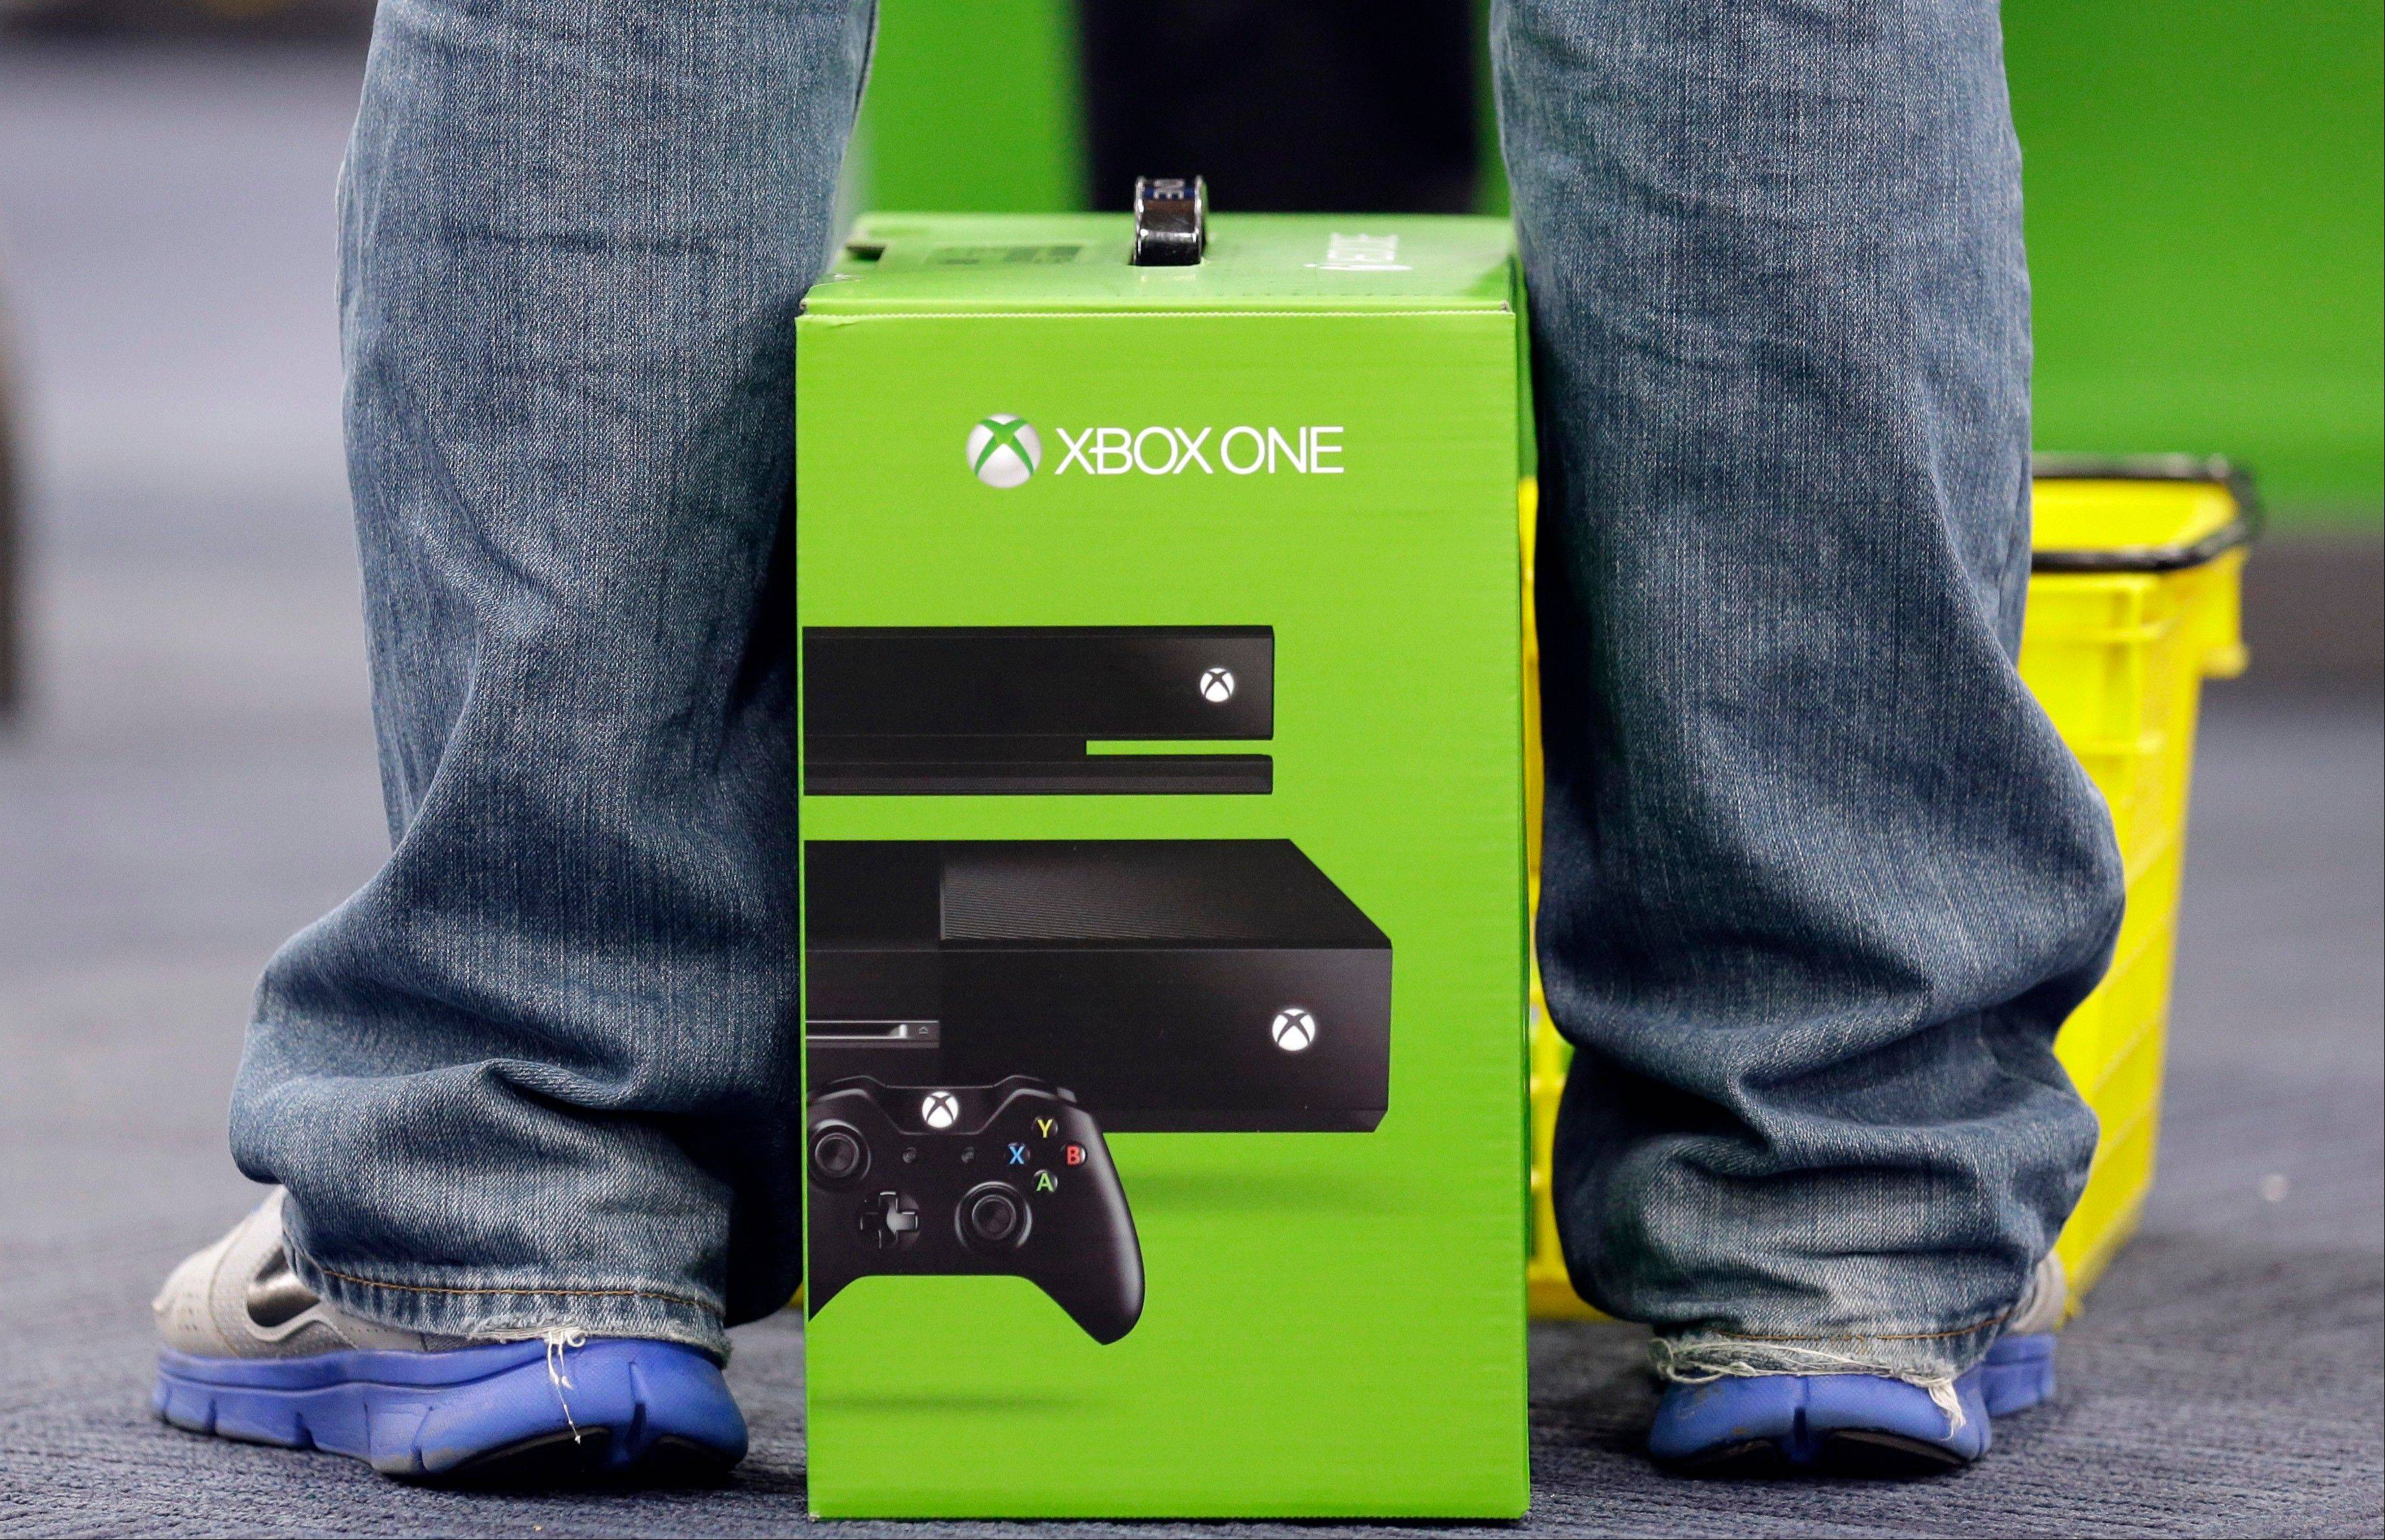 A man puts his newest XBox One on the floor Friday after he purchased it at a Best Buy in Evanston. The Xbox One, which includes an updated Kinect motion sensor, cost $500. Microsoft is billing it as an all-in-one entertainment system rather than just a gaming console.